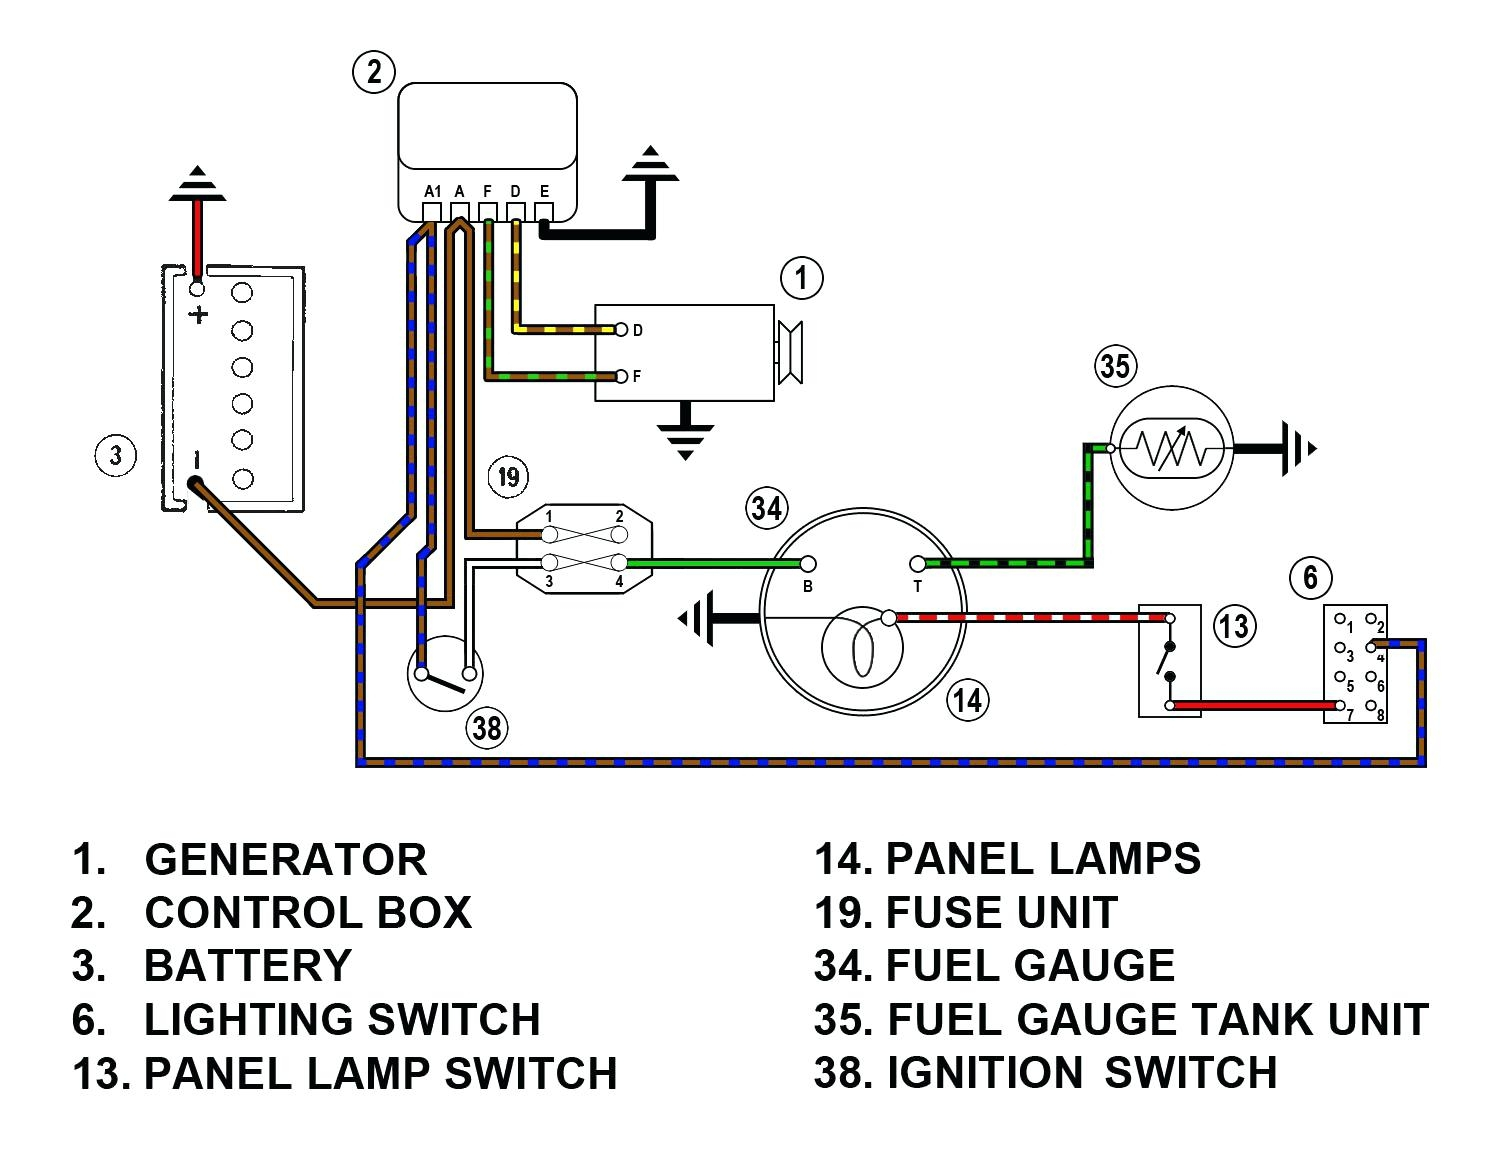 dump trailer pump wiring diagram Collection-dump trailer hydraulic pump wiring diagram Chevy Silverado Trailer Wiring Diagram Awesome Dump Trailer Wiring 13-f